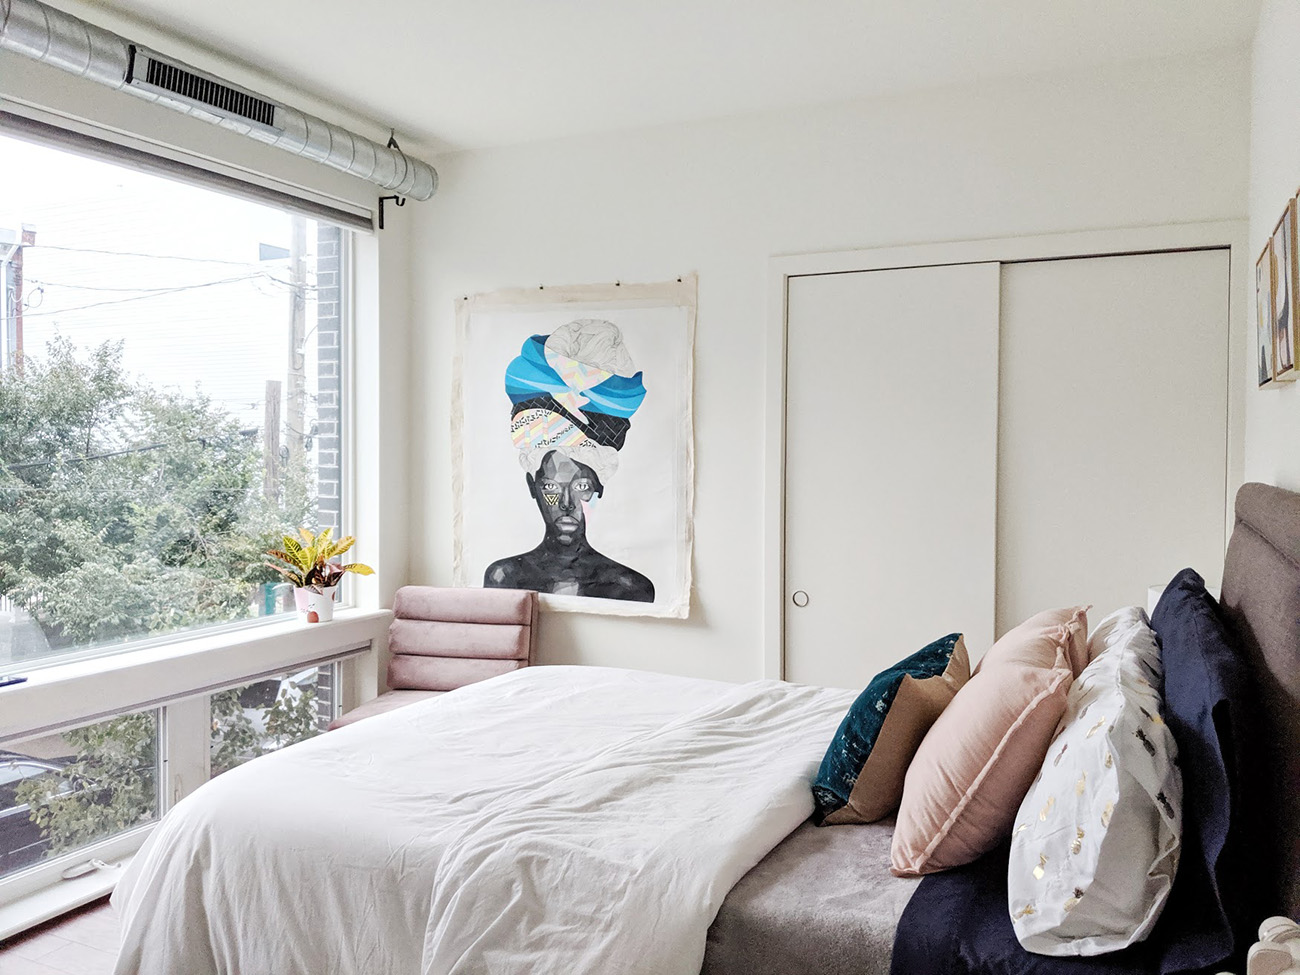 7 ways to create a calm space, according to Charlotte design experts